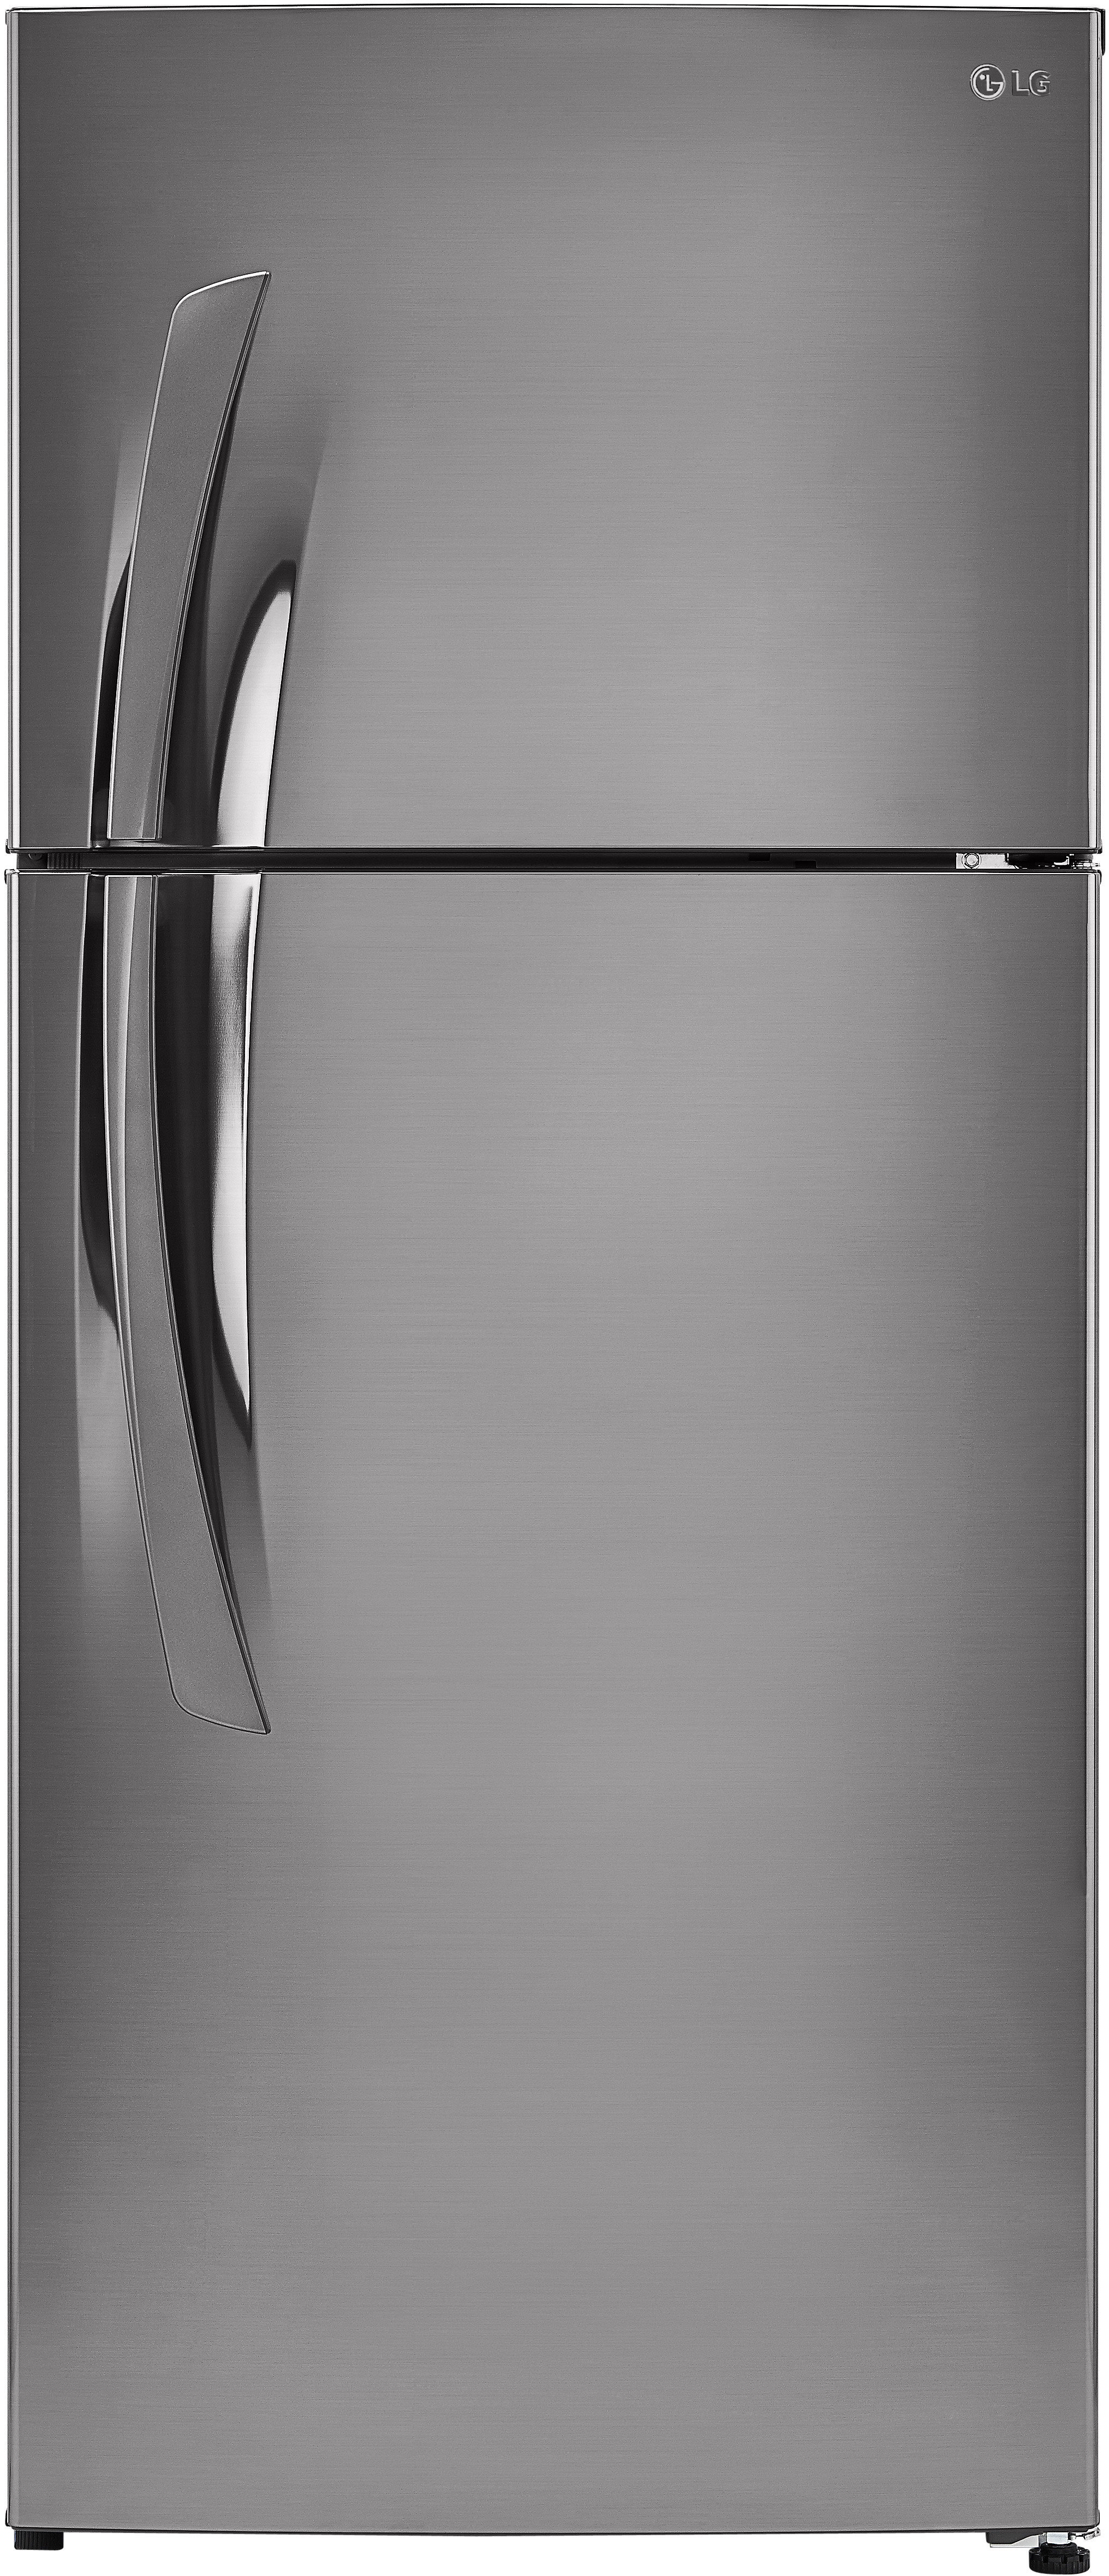 The 15.7-cu.-ft. LG LTNS16121V comes in something called a stainless vinyl coated metal finish.